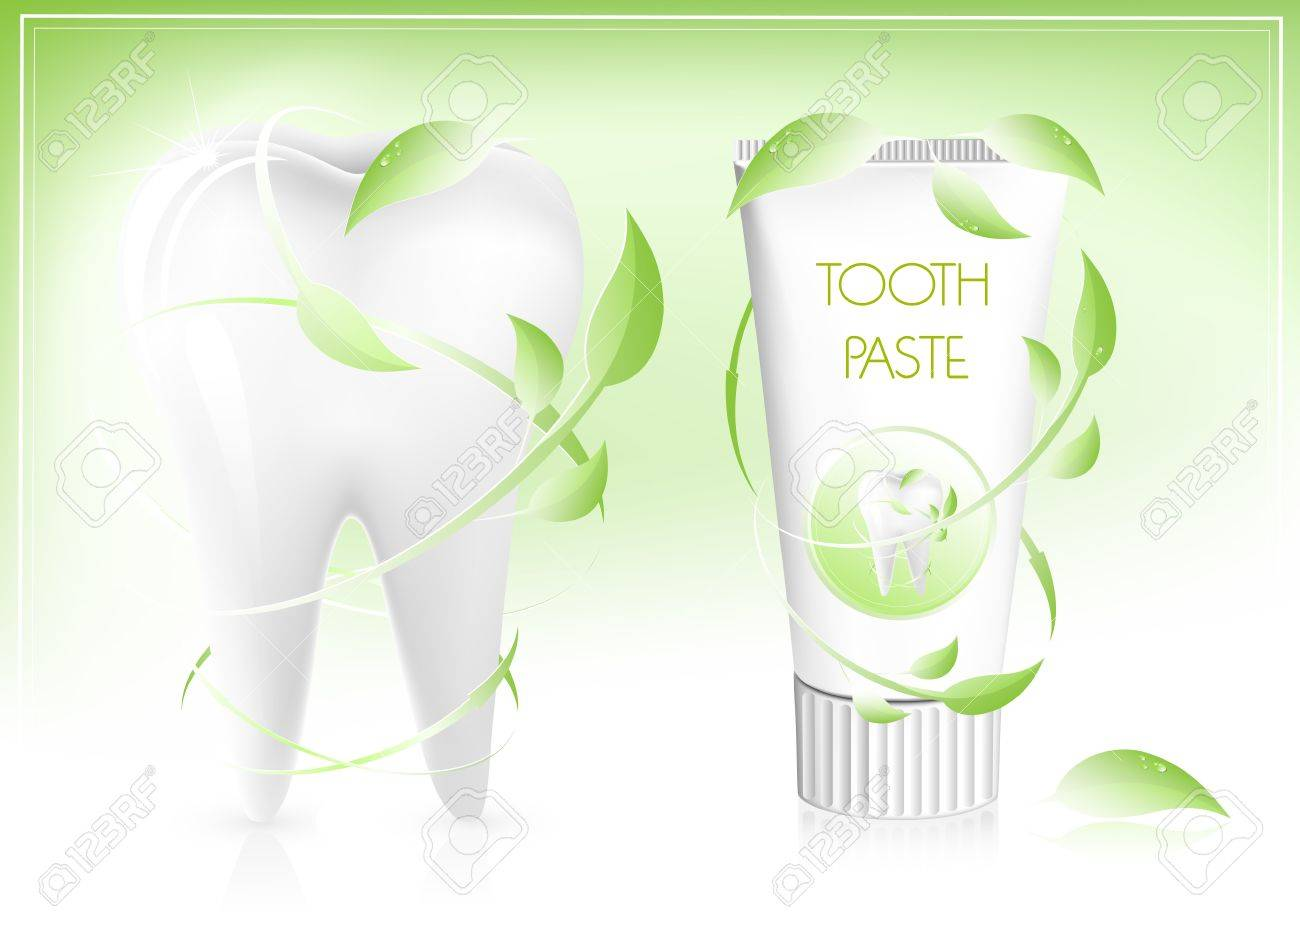 Vector illustration. Toothpaste with leaves. Stock Vector - 10053334